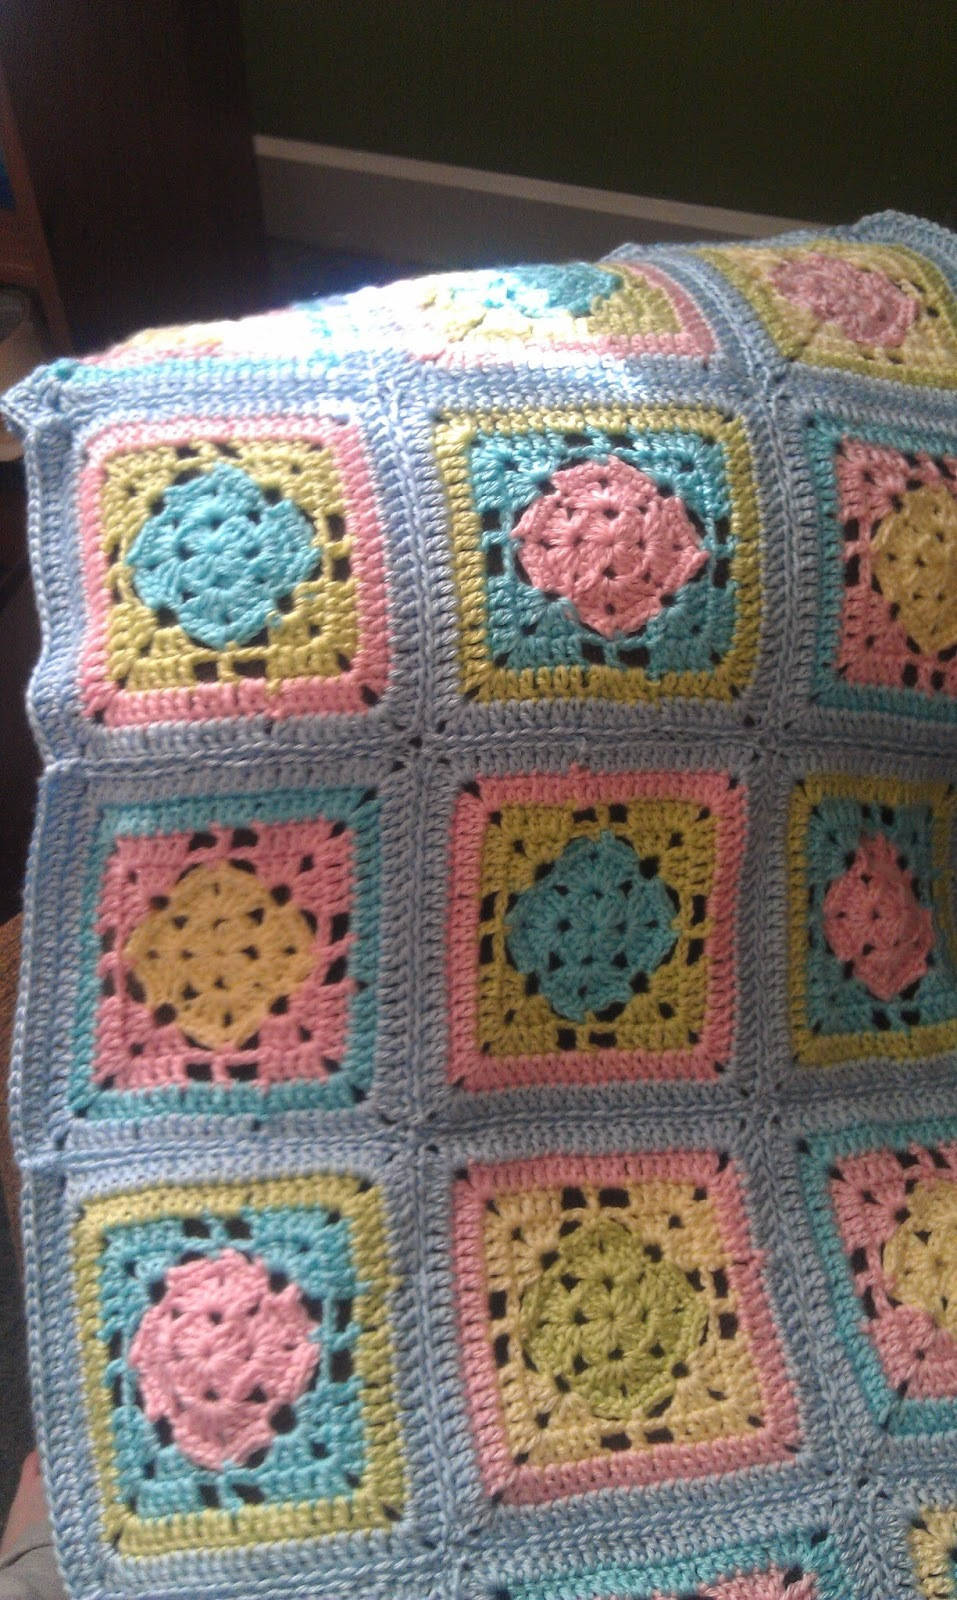 Crochet Granny Square Blanket Patterns Free Awesome Spring Fling Granny Square Blanket Of Amazing 42 Ideas Crochet Granny Square Blanket Patterns Free